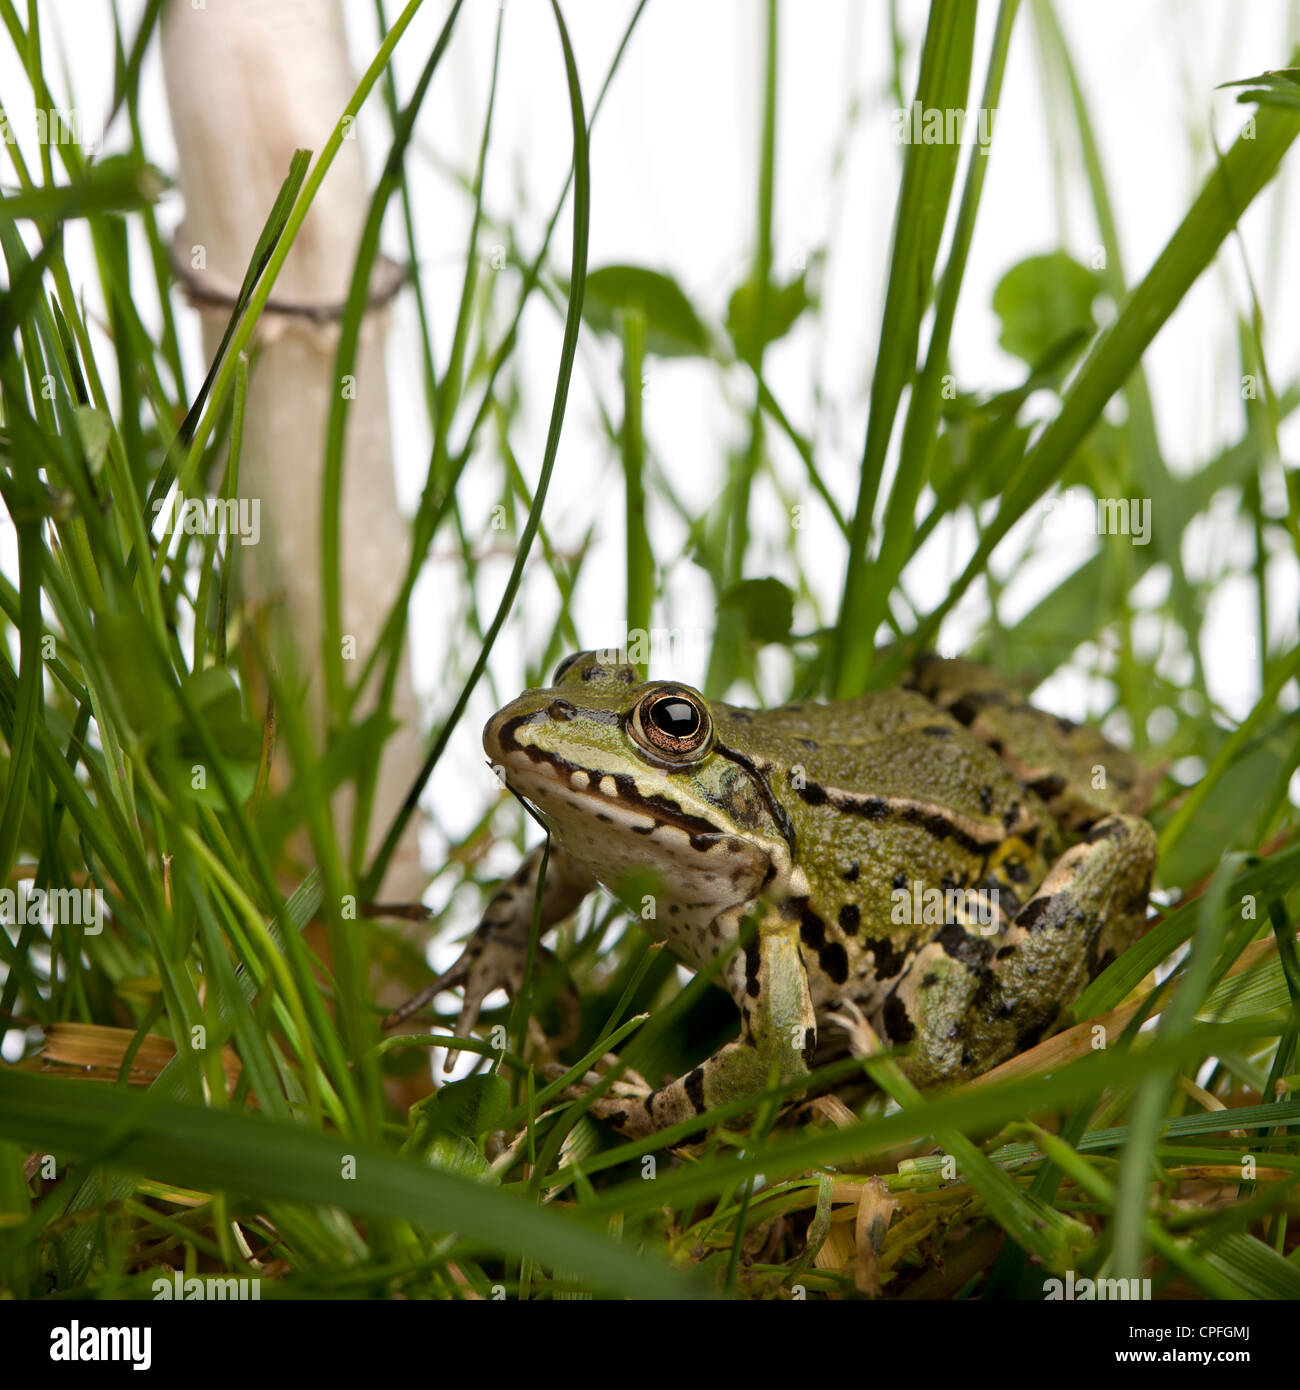 Common European frog or Edible Frog, Rana esculenta in grass, against white background - Stock Image